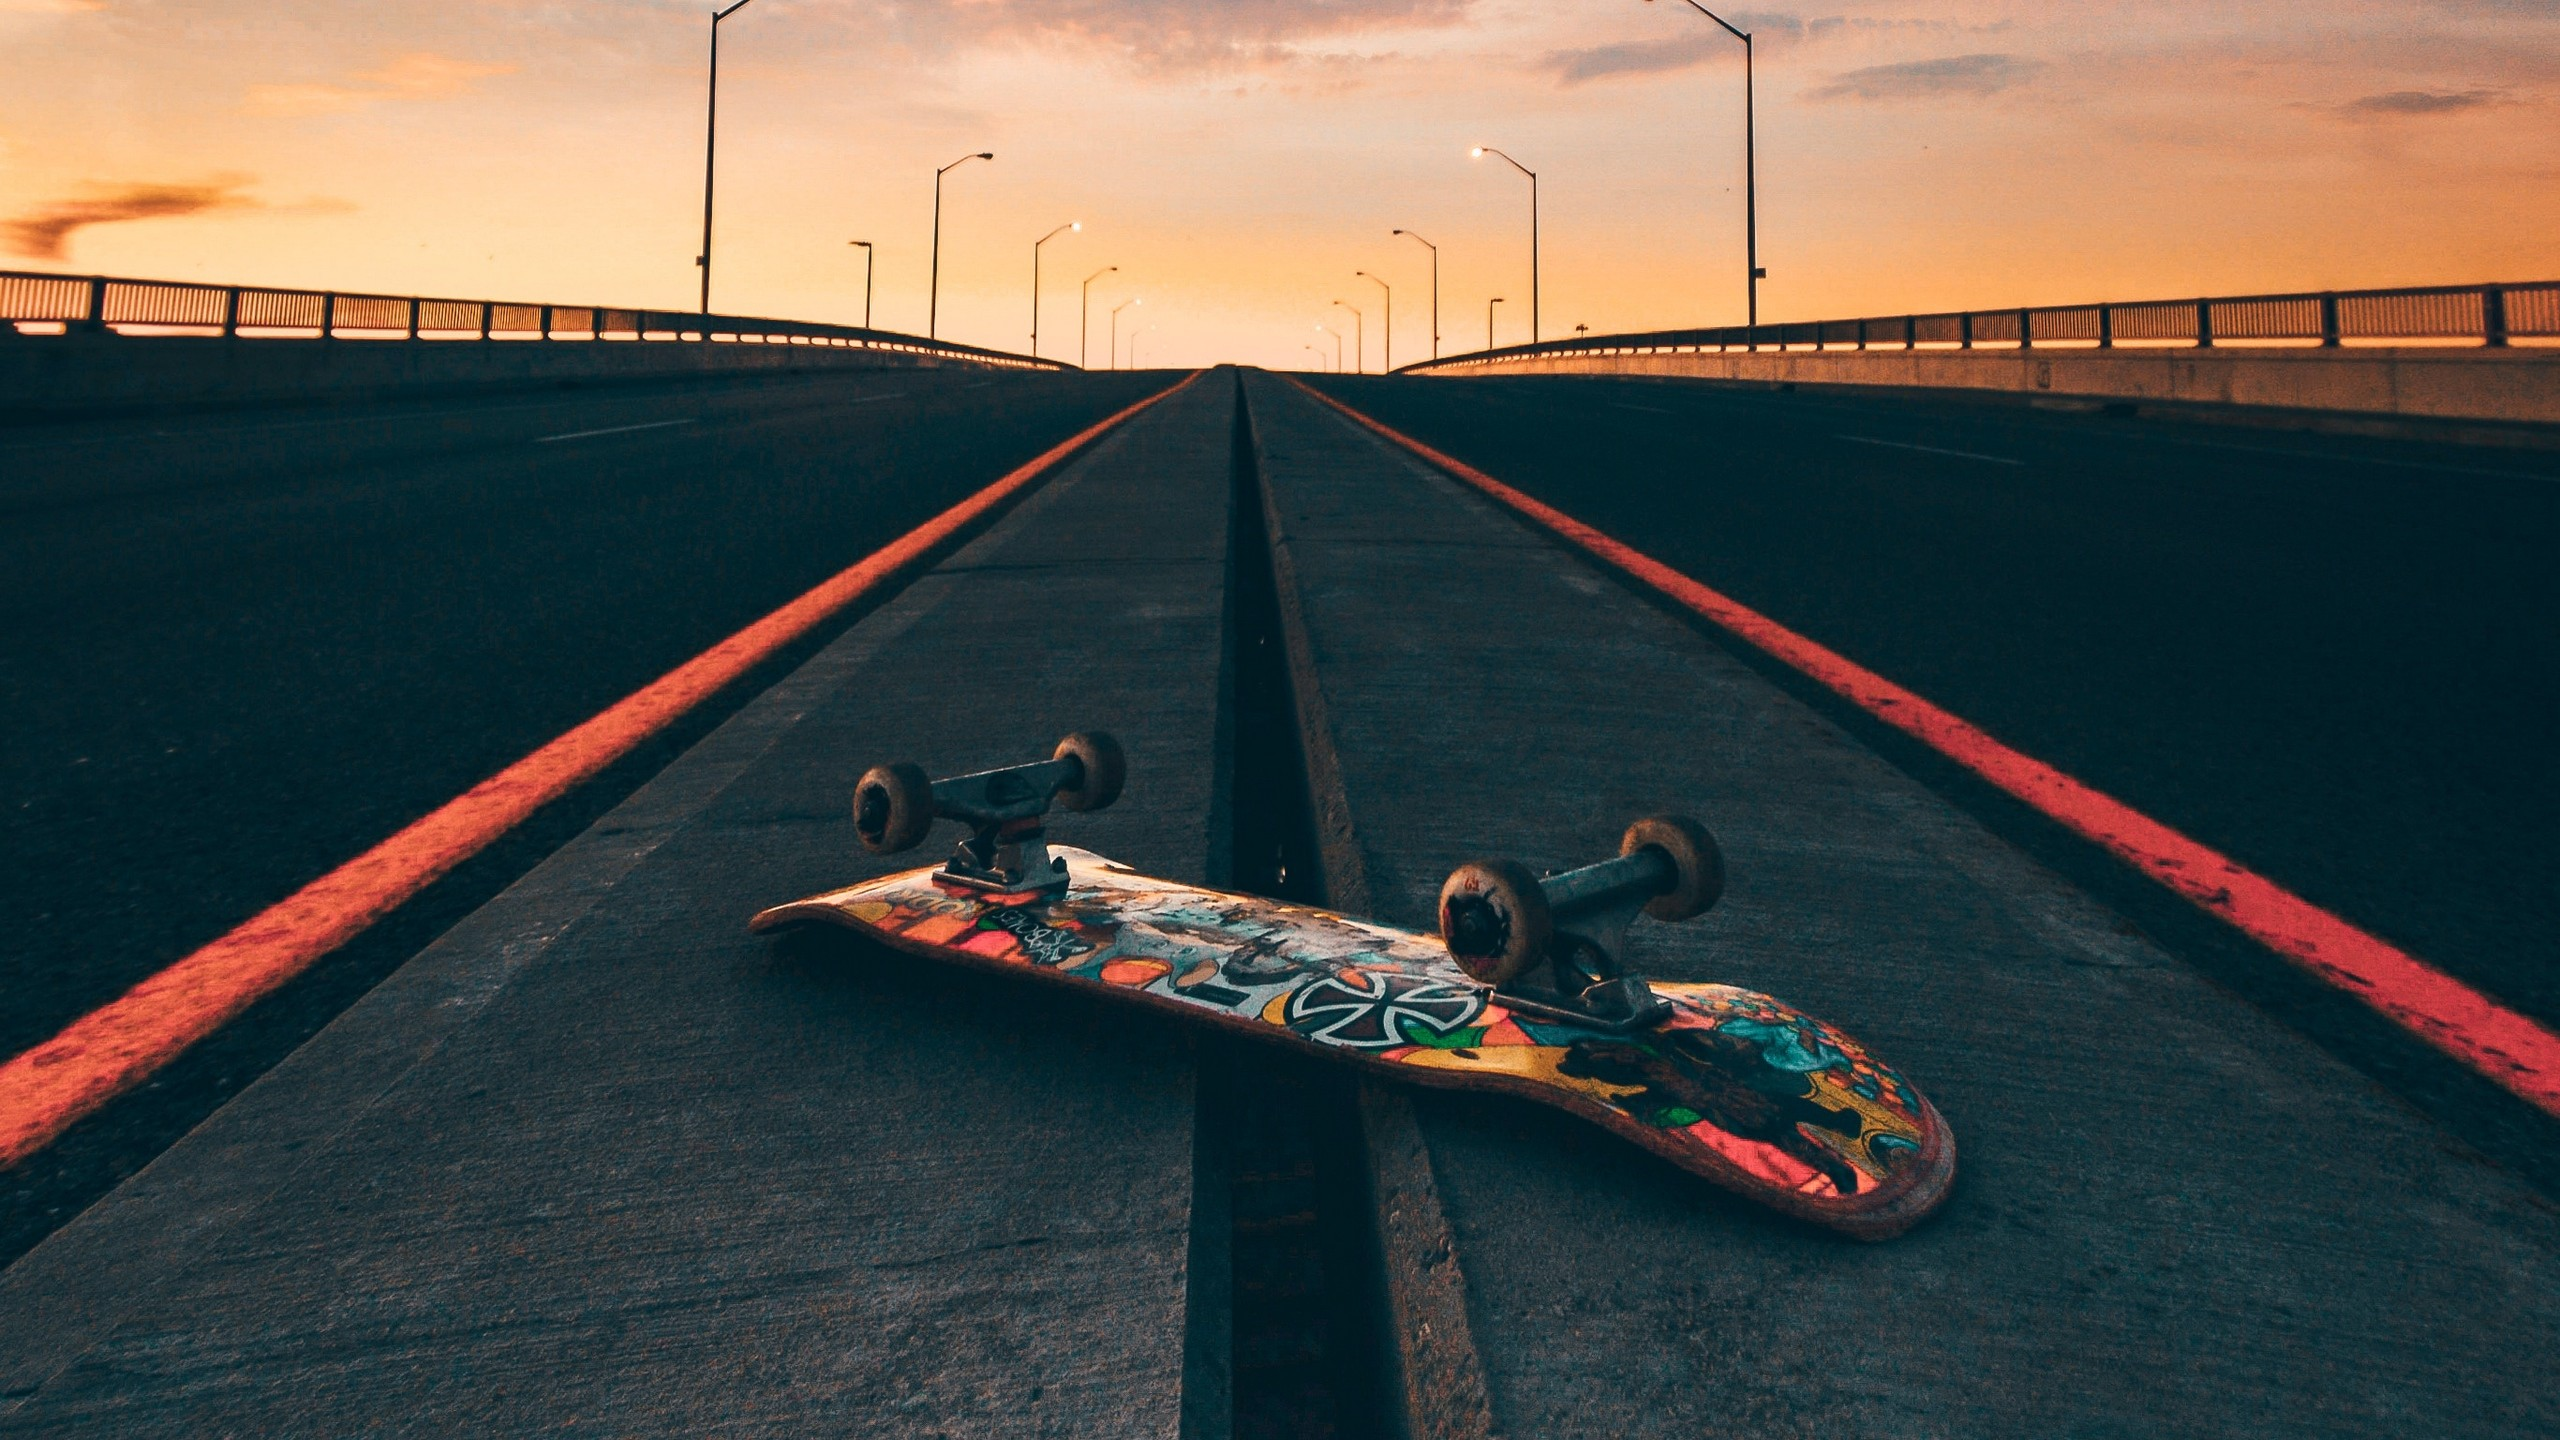 Wallpaper Of Skateboard 74 Pictures